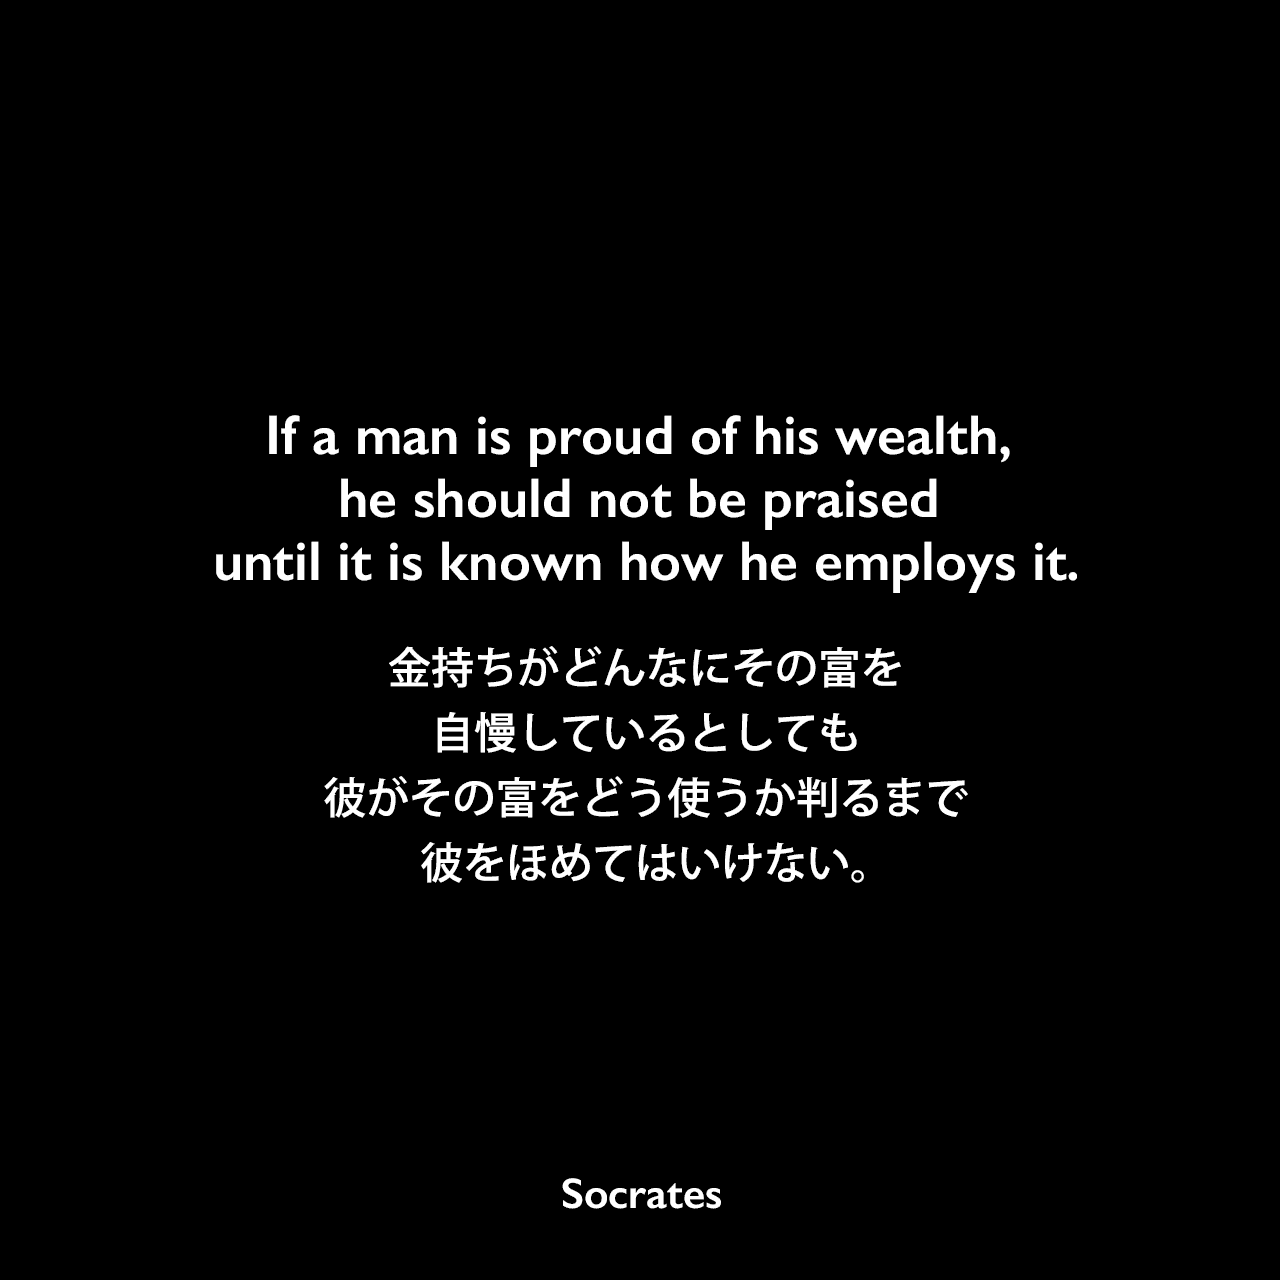 If a man is proud of his wealth, he should not be praised until it is known how he employs it.金持ちがどんなにその富を自慢しているとしても、彼がその富をどう使うか判るまで、彼をほめてはいけない。Socrates